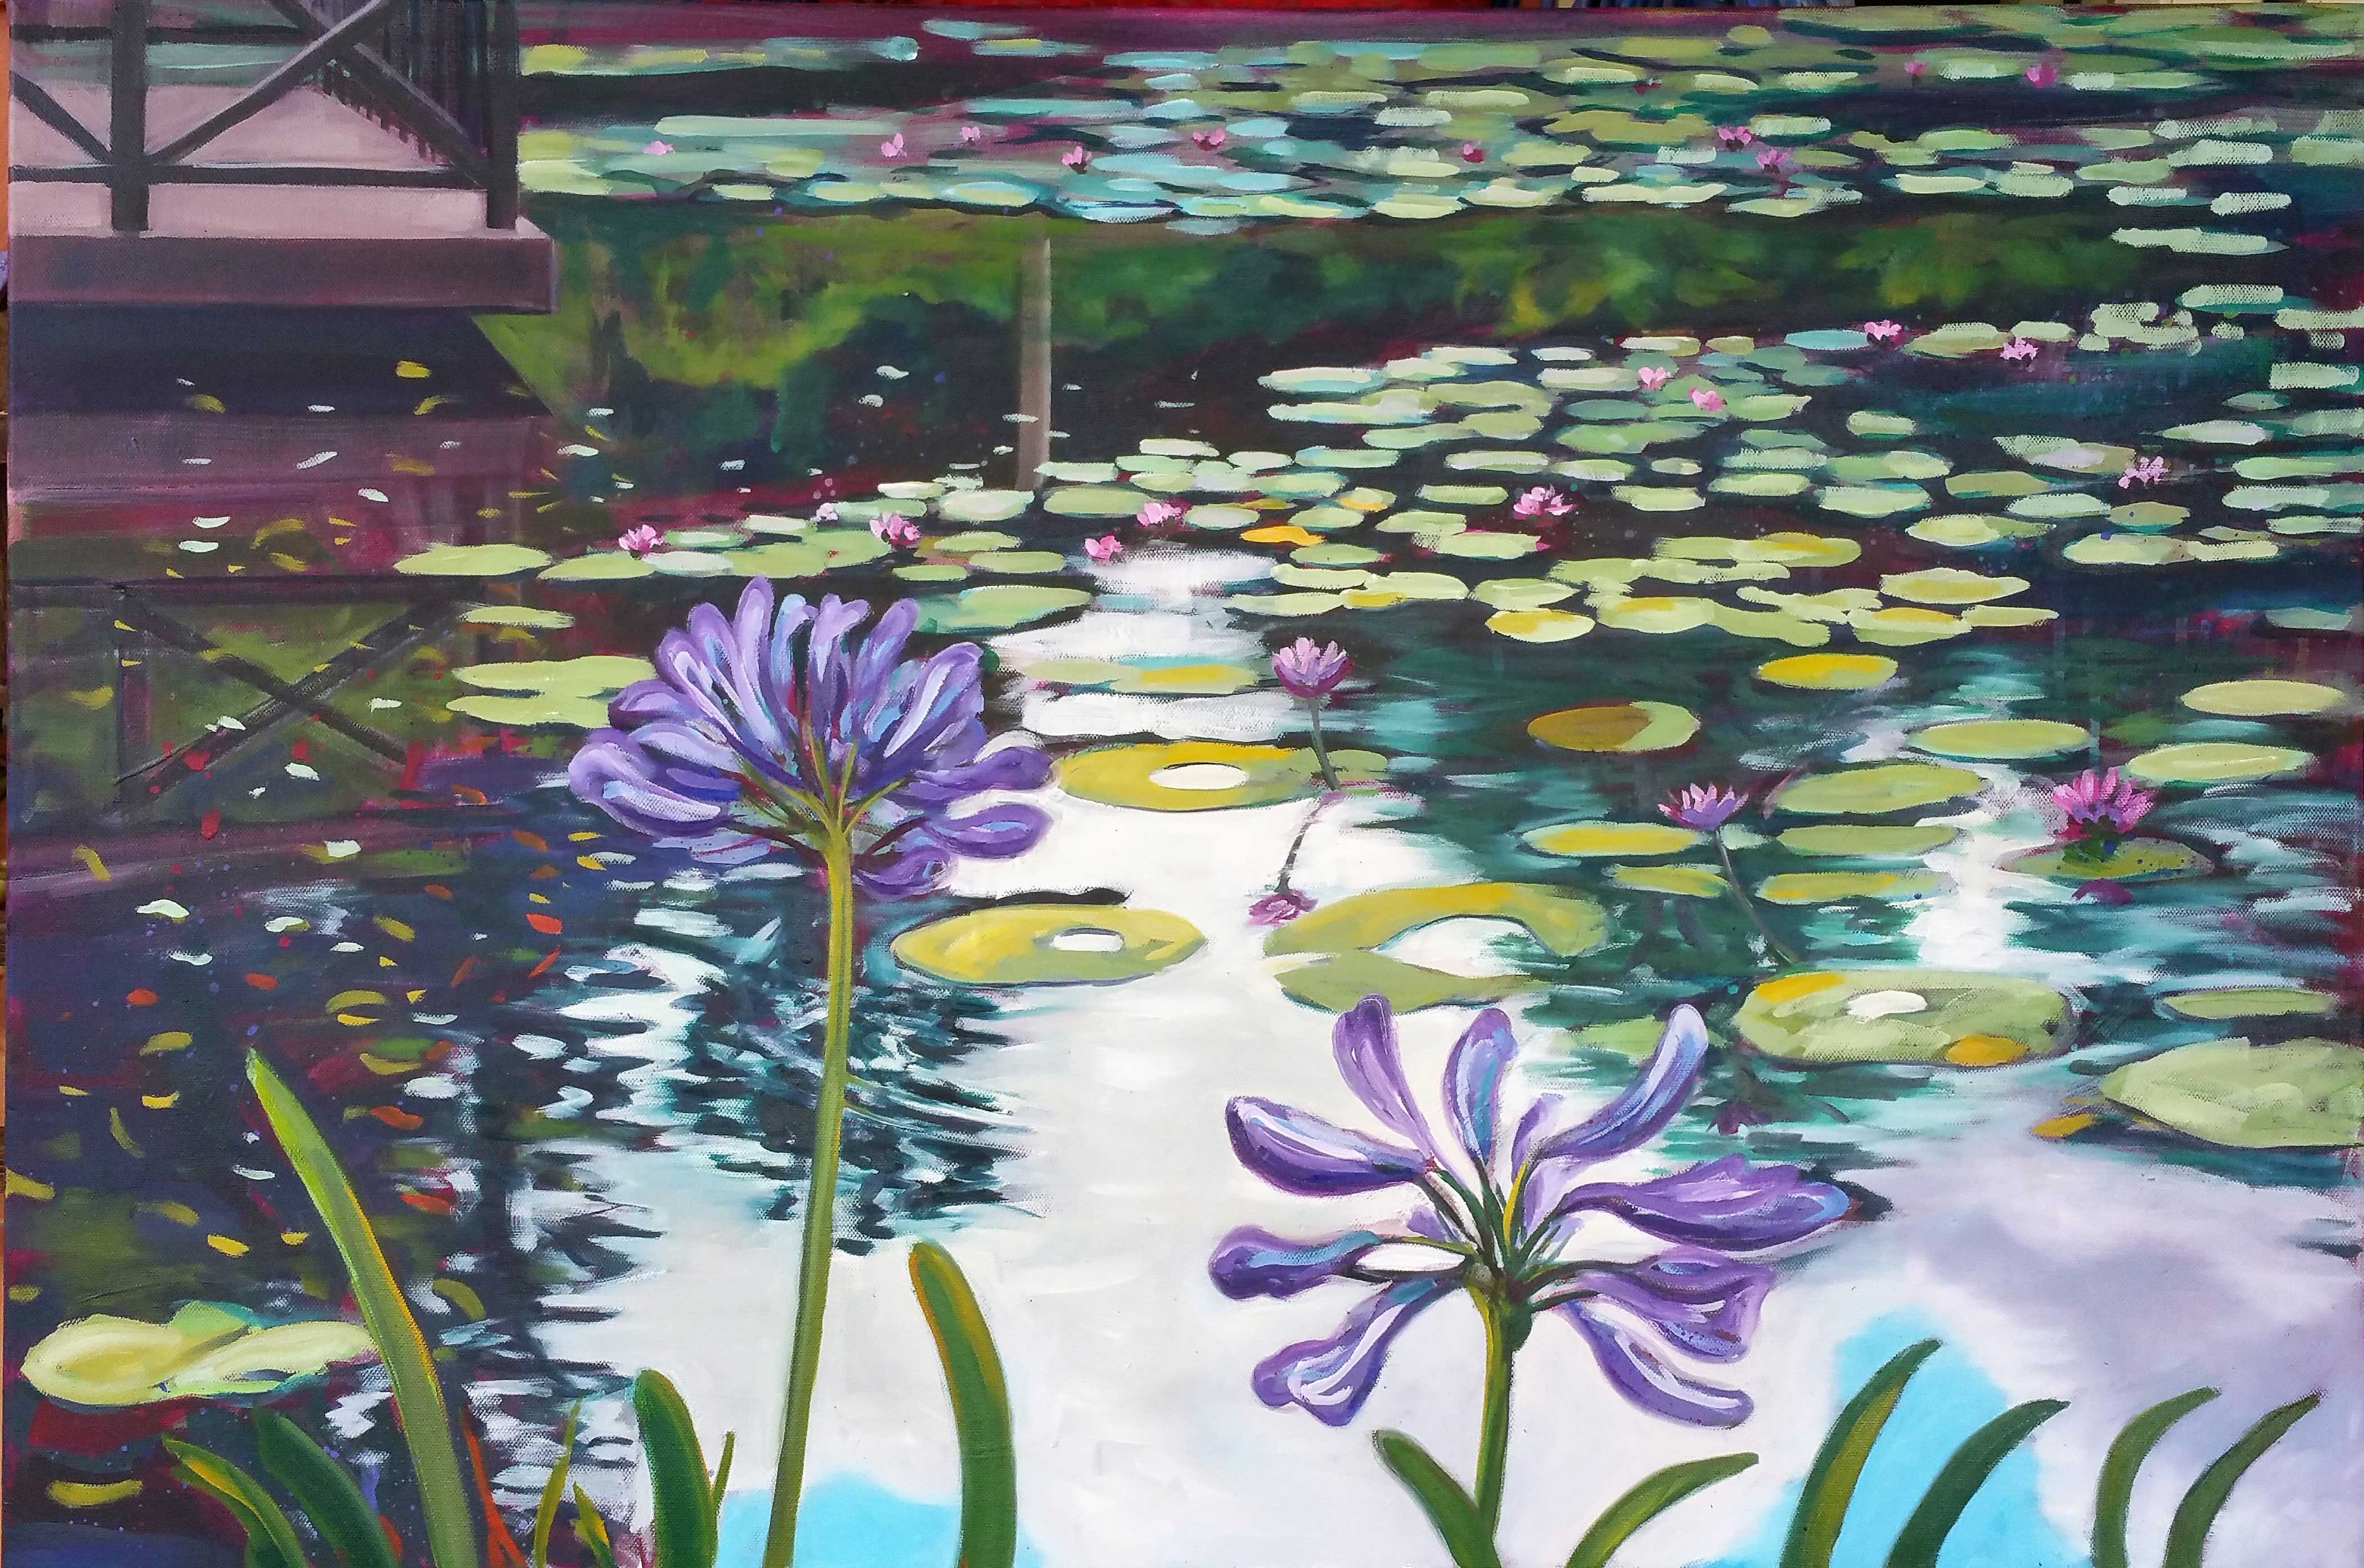 Agapanthus and waterlilies, Mt Coot-tha Botanic Gardens